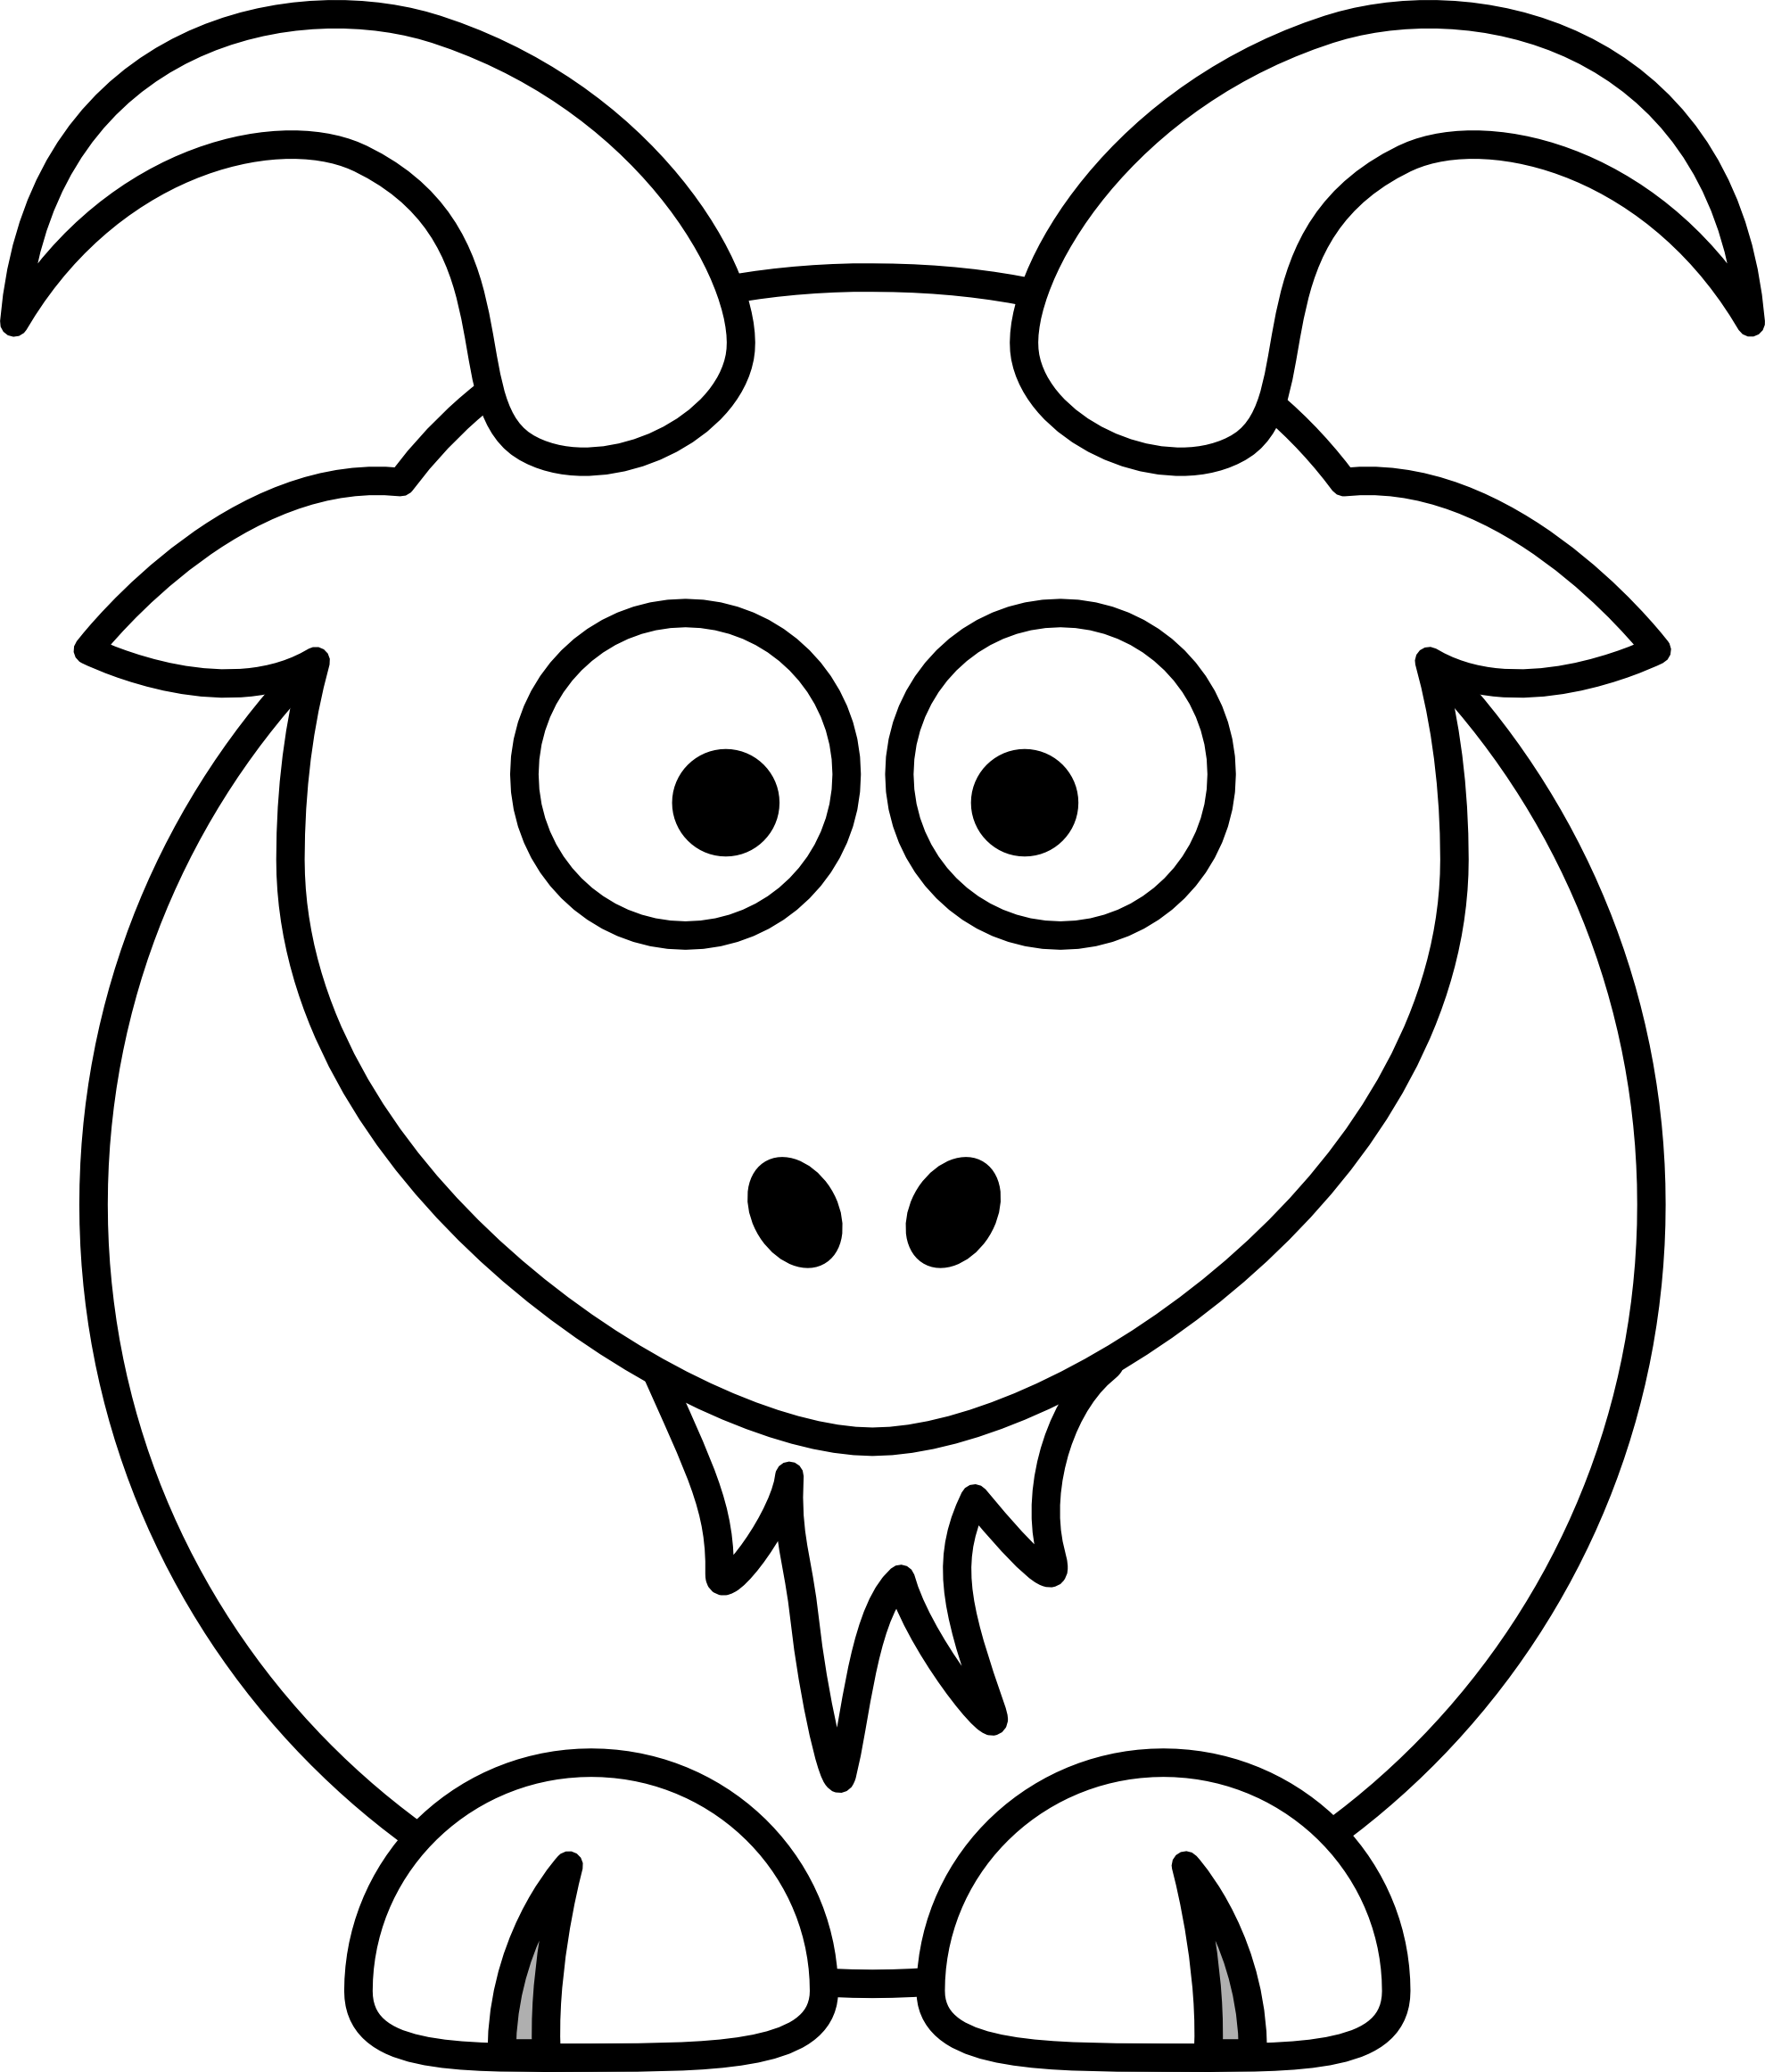 Simple Clip Art Line : Animal line drawings clipart best